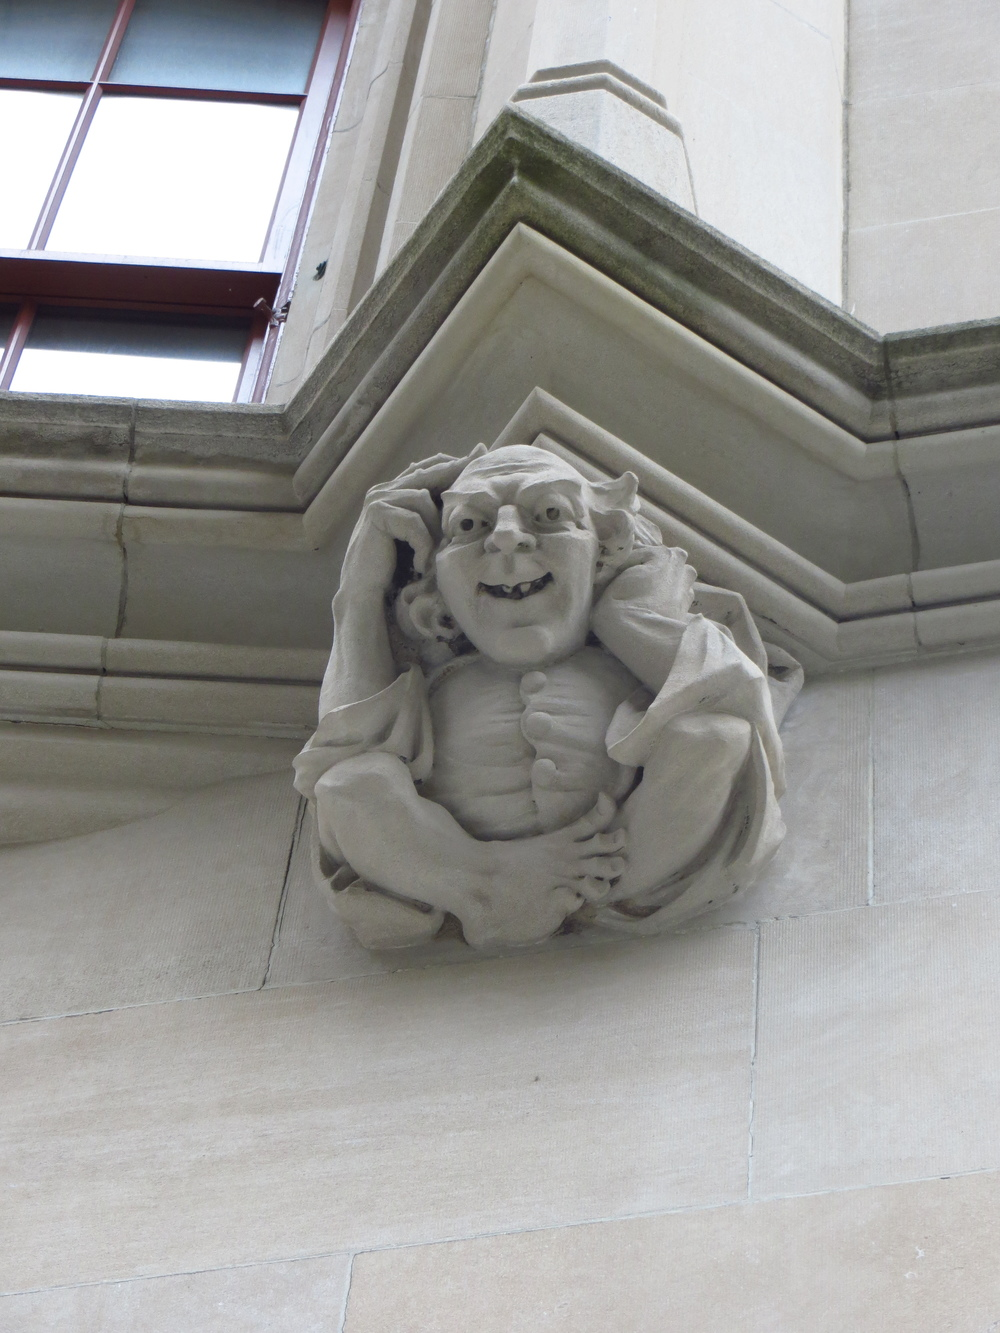 Hunter College gargoyle